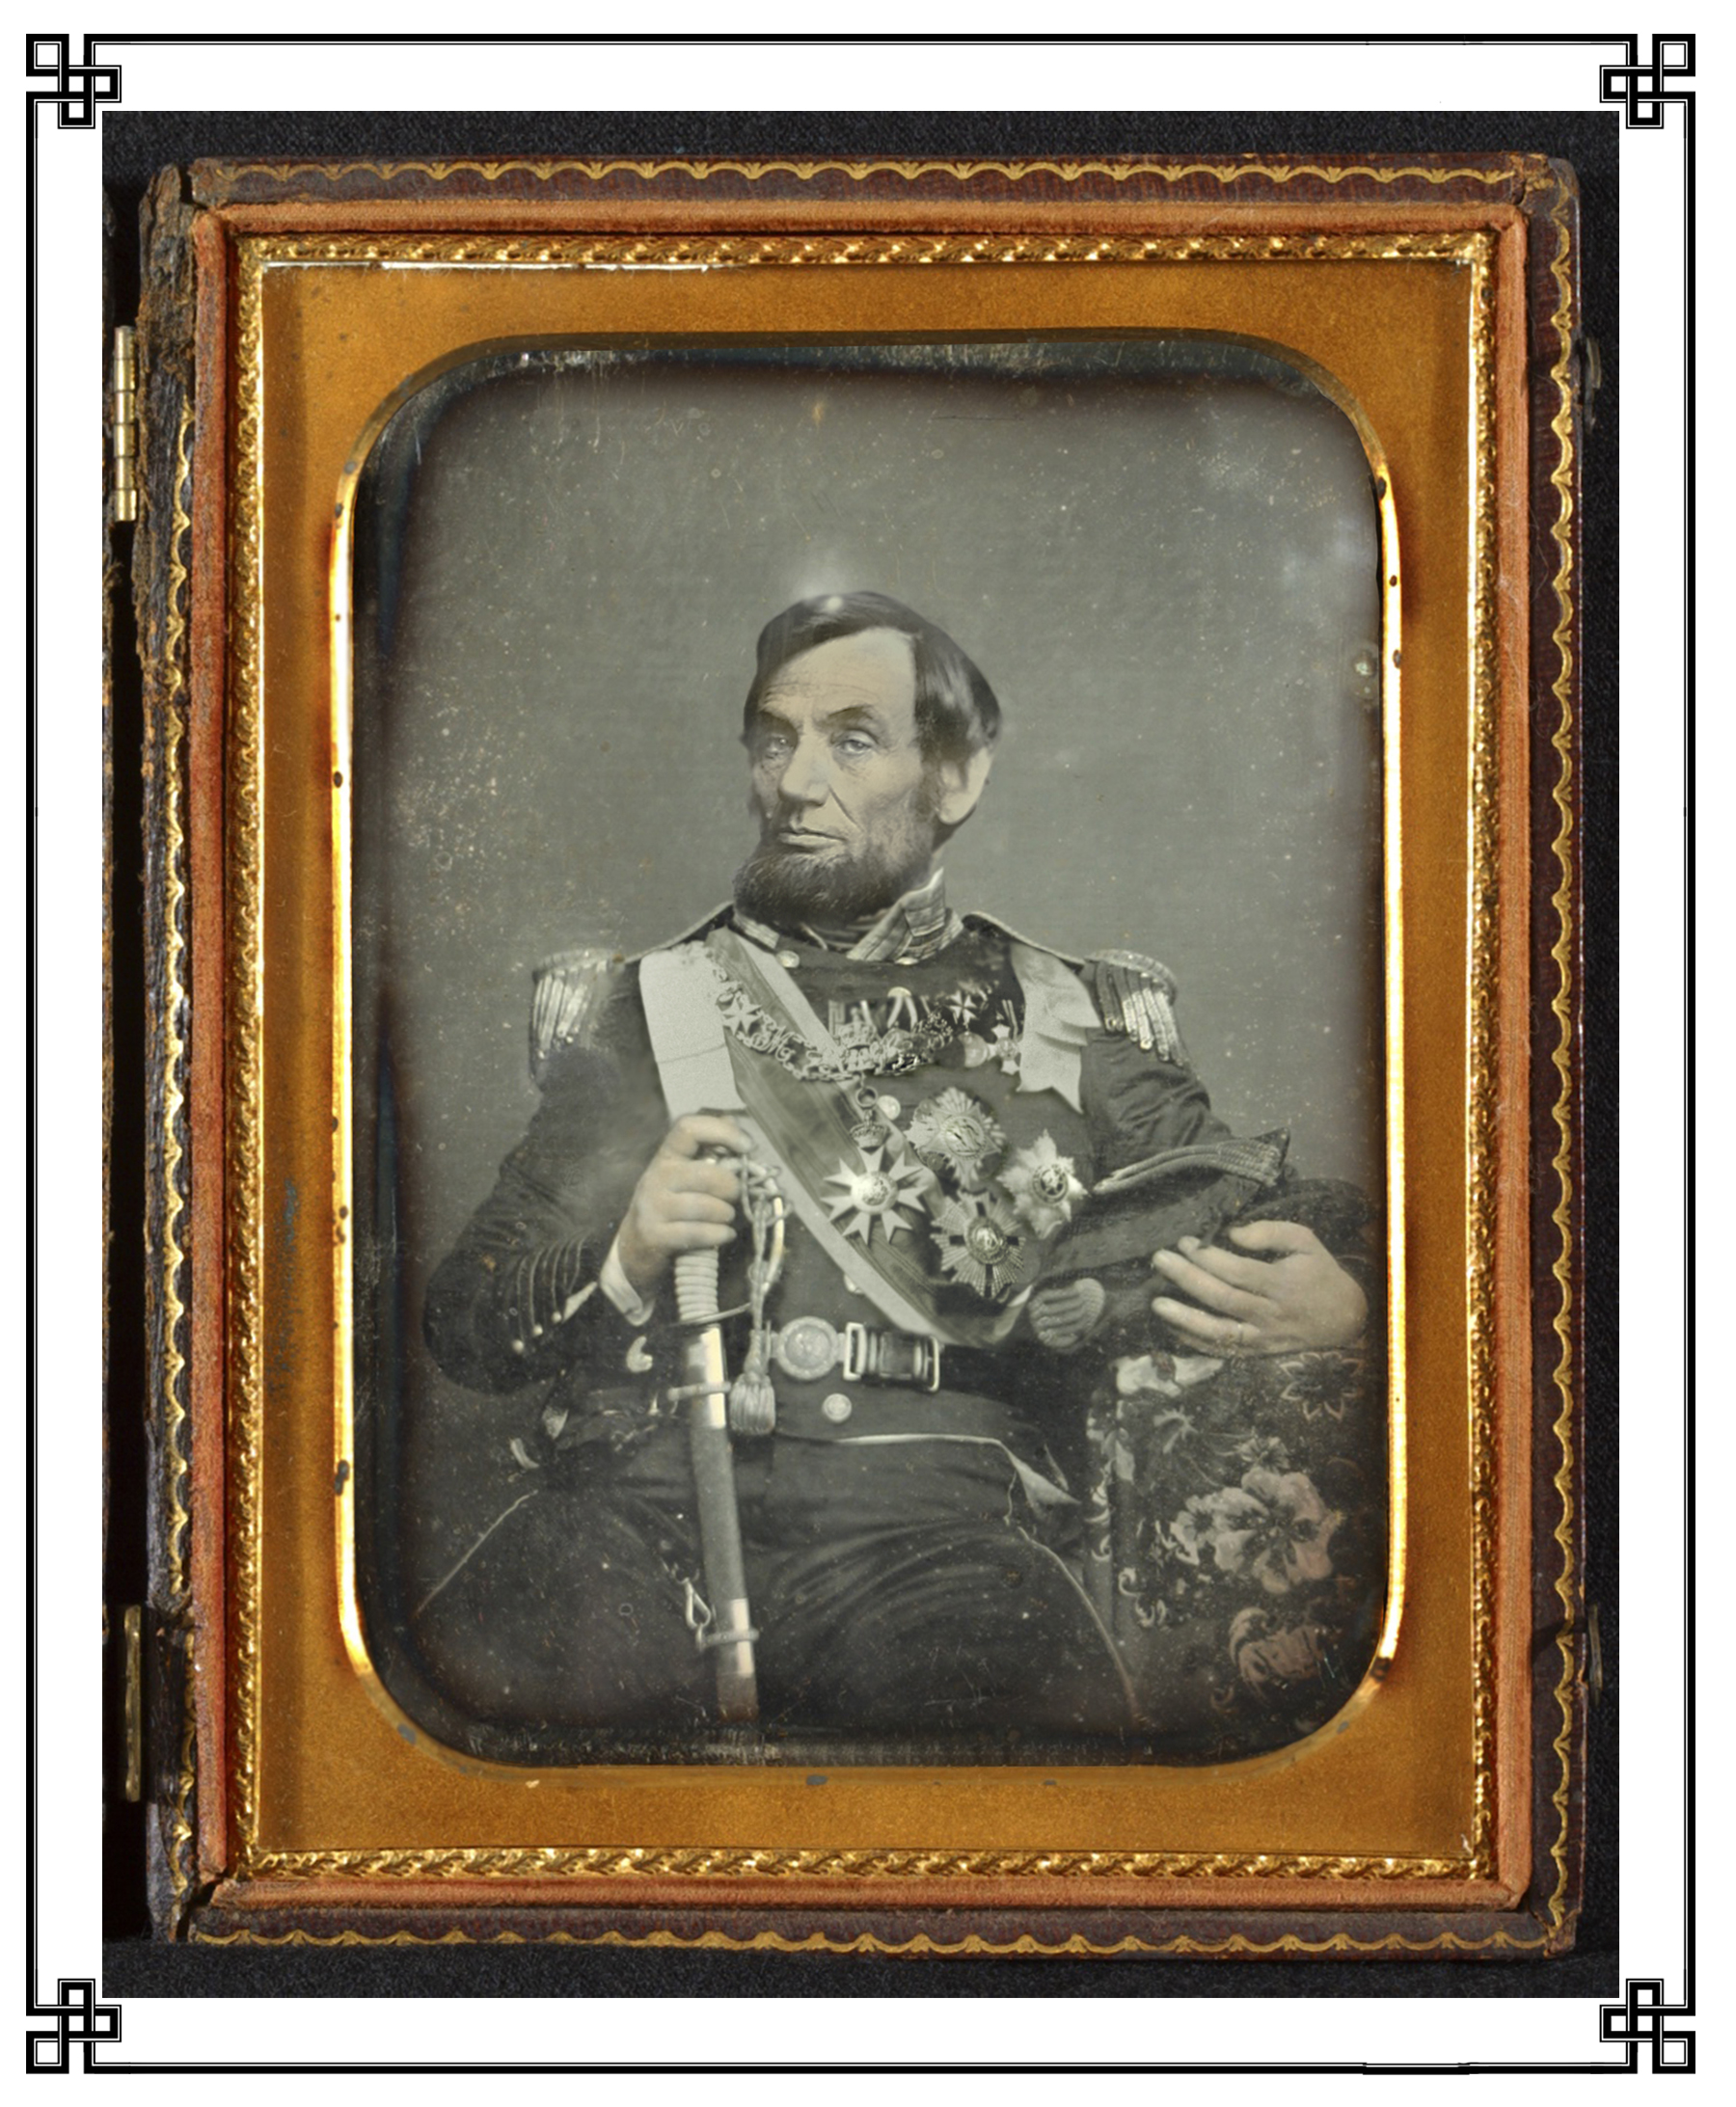 "Normal   0           false   false   false     EN-US   X-NONE   X-NONE                                                                                                                                                                                                                                                                                                                                                                  His Extraordinary Majesty Abraham the First, daguerreotyped here shortly after his coronation as first Tyrannos of the United States and immediately prior to the issuance of his celebrated proclamation on the liquidation of the slave-owning class, was perhaps best beloved for his pithy homilies, well-illustrated by such chestnuts as ""call a man something often enough and, sooner or later, he'll oblige you.""     Normal   0           false   false   false     EN-US   X-NONE   X-NONE                                                                                                                                                                                                                                                                                                                                                                    /* Style Definitions */  table.MsoNormalTable 	{mso-style-name:""Table Normal""; 	mso-tstyle-rowband-size:0; 	mso-tstyle-colband-size:0; 	mso-style-noshow:yes; 	mso-style-priority:99; 	mso-style-parent:""""; 	mso-padding-alt:0in 5.4pt 0in 5.4pt; 	mso-para-margin-top:0in; 	mso-para-margin-right:0in; 	mso-para-margin-bottom:10.0pt; 	mso-para-margin-left:0in; 	line-height:115%; 	mso-pagination:widow-orphan; 	font-size:12.0pt; 	font-family:""Times New Roman"",""serif"";}"